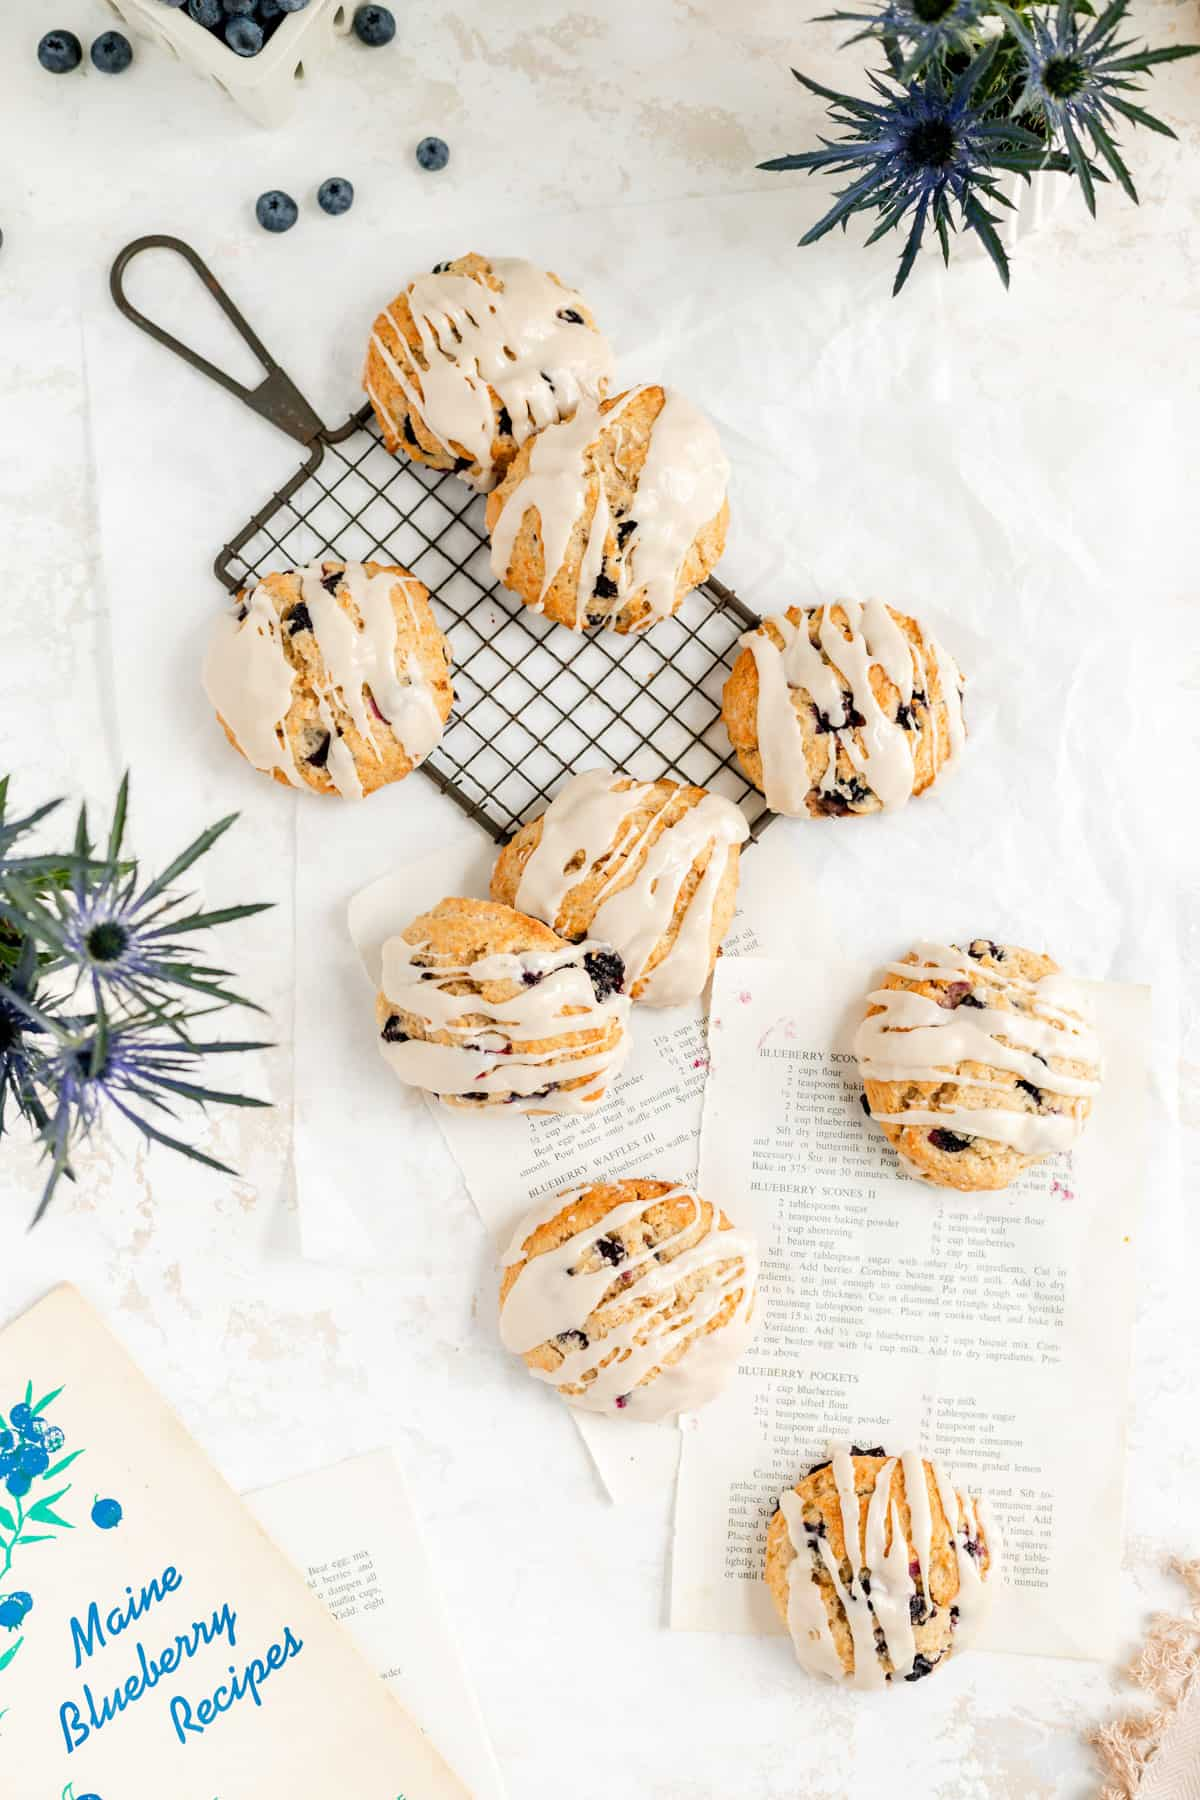 glazed scones on a wire rack and recipe pages from above with blue flowers and berries